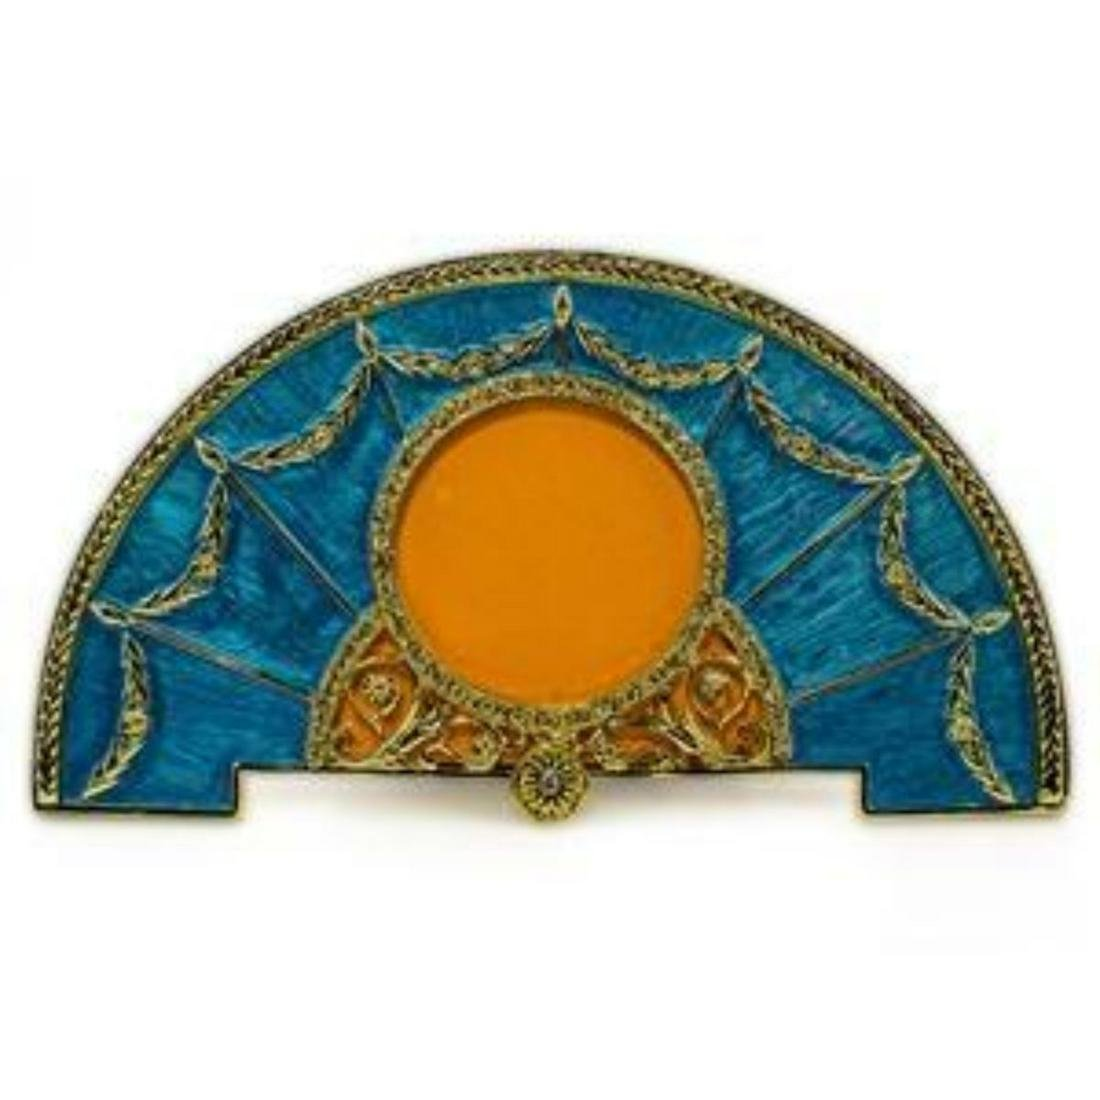 Nourveau-style Semicircular Faberge-Inspired Guilloche